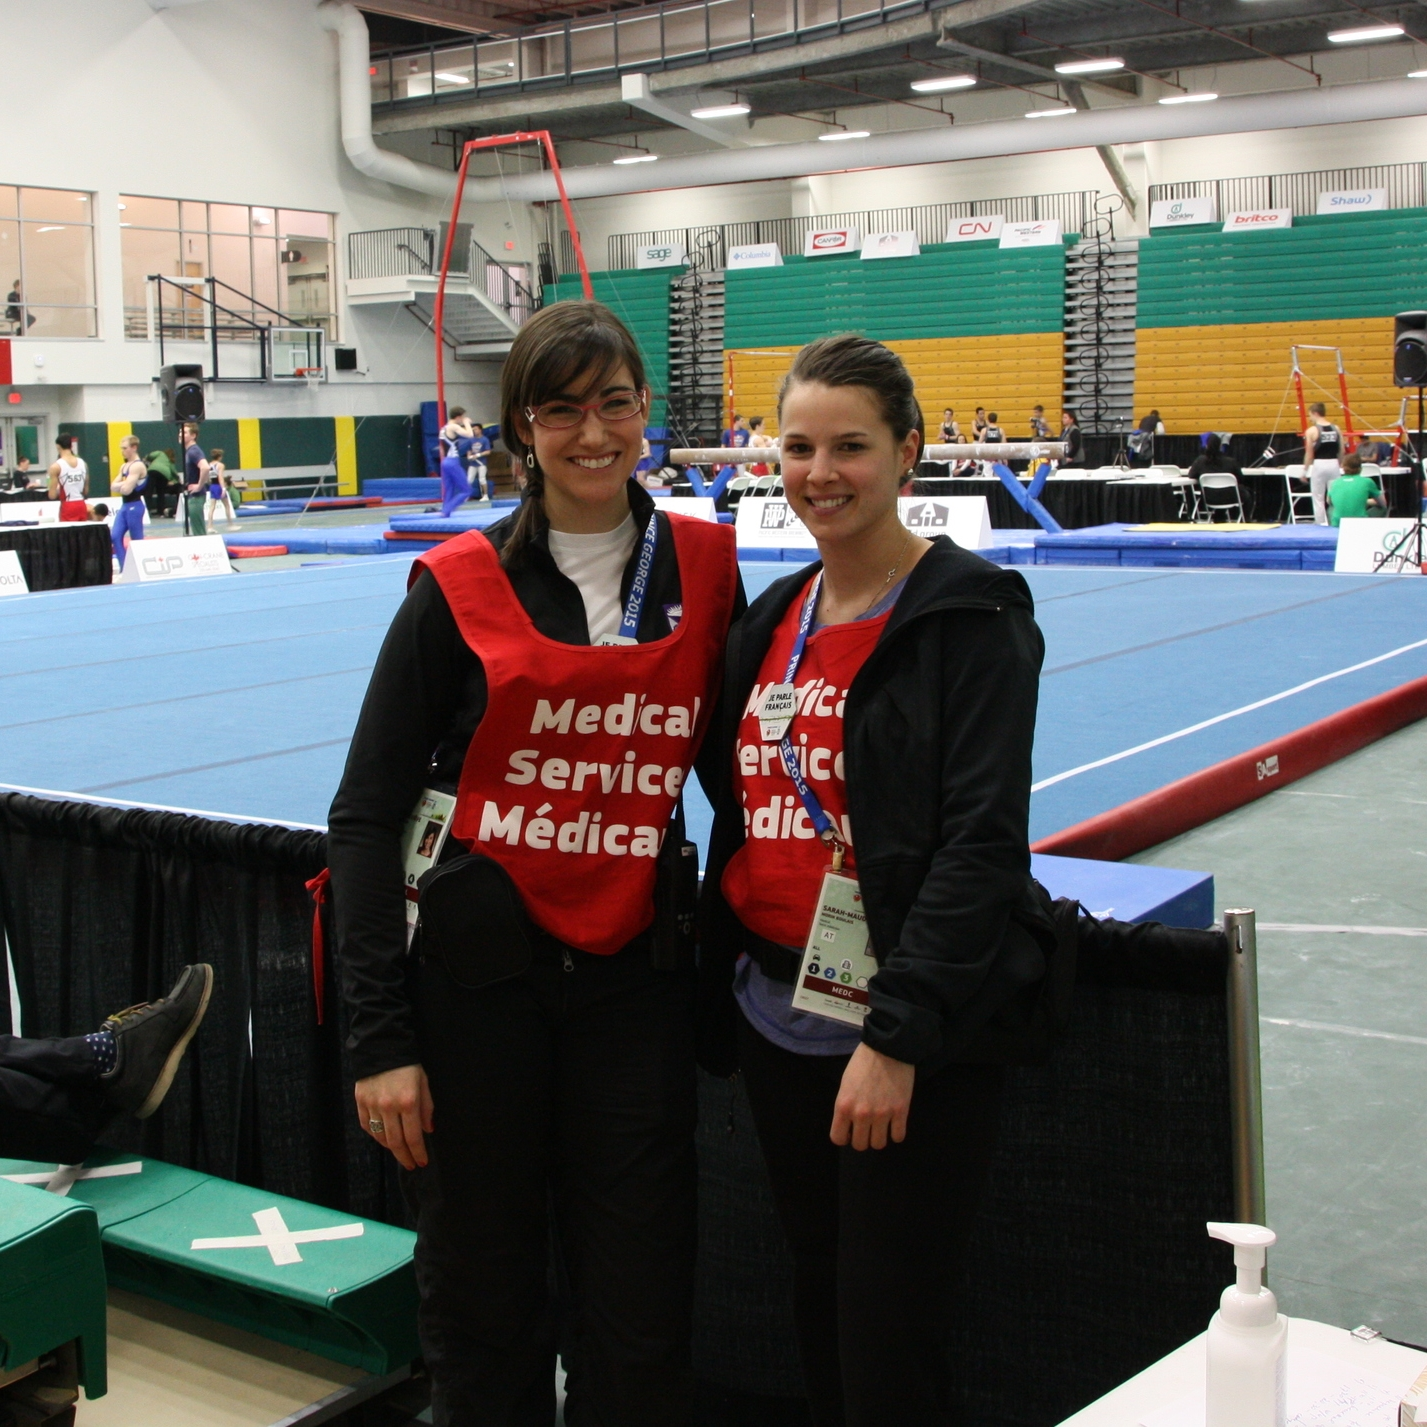 2015 Canada Winter Games, Prince George